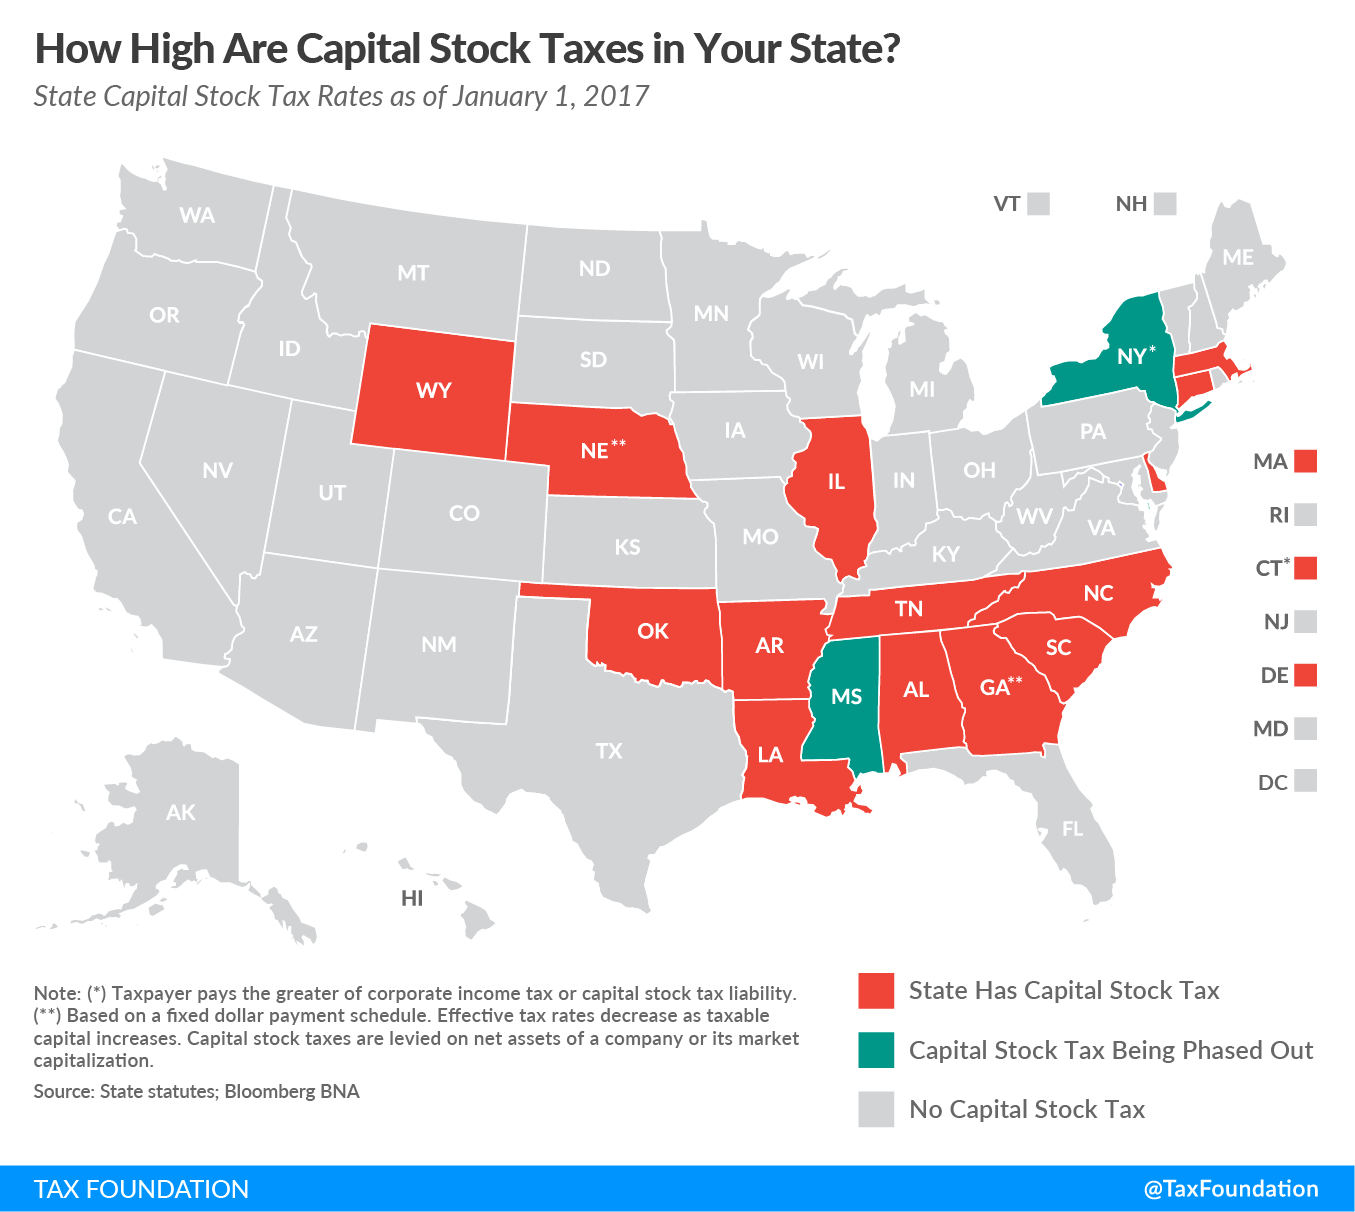 Capital Stock Taxes